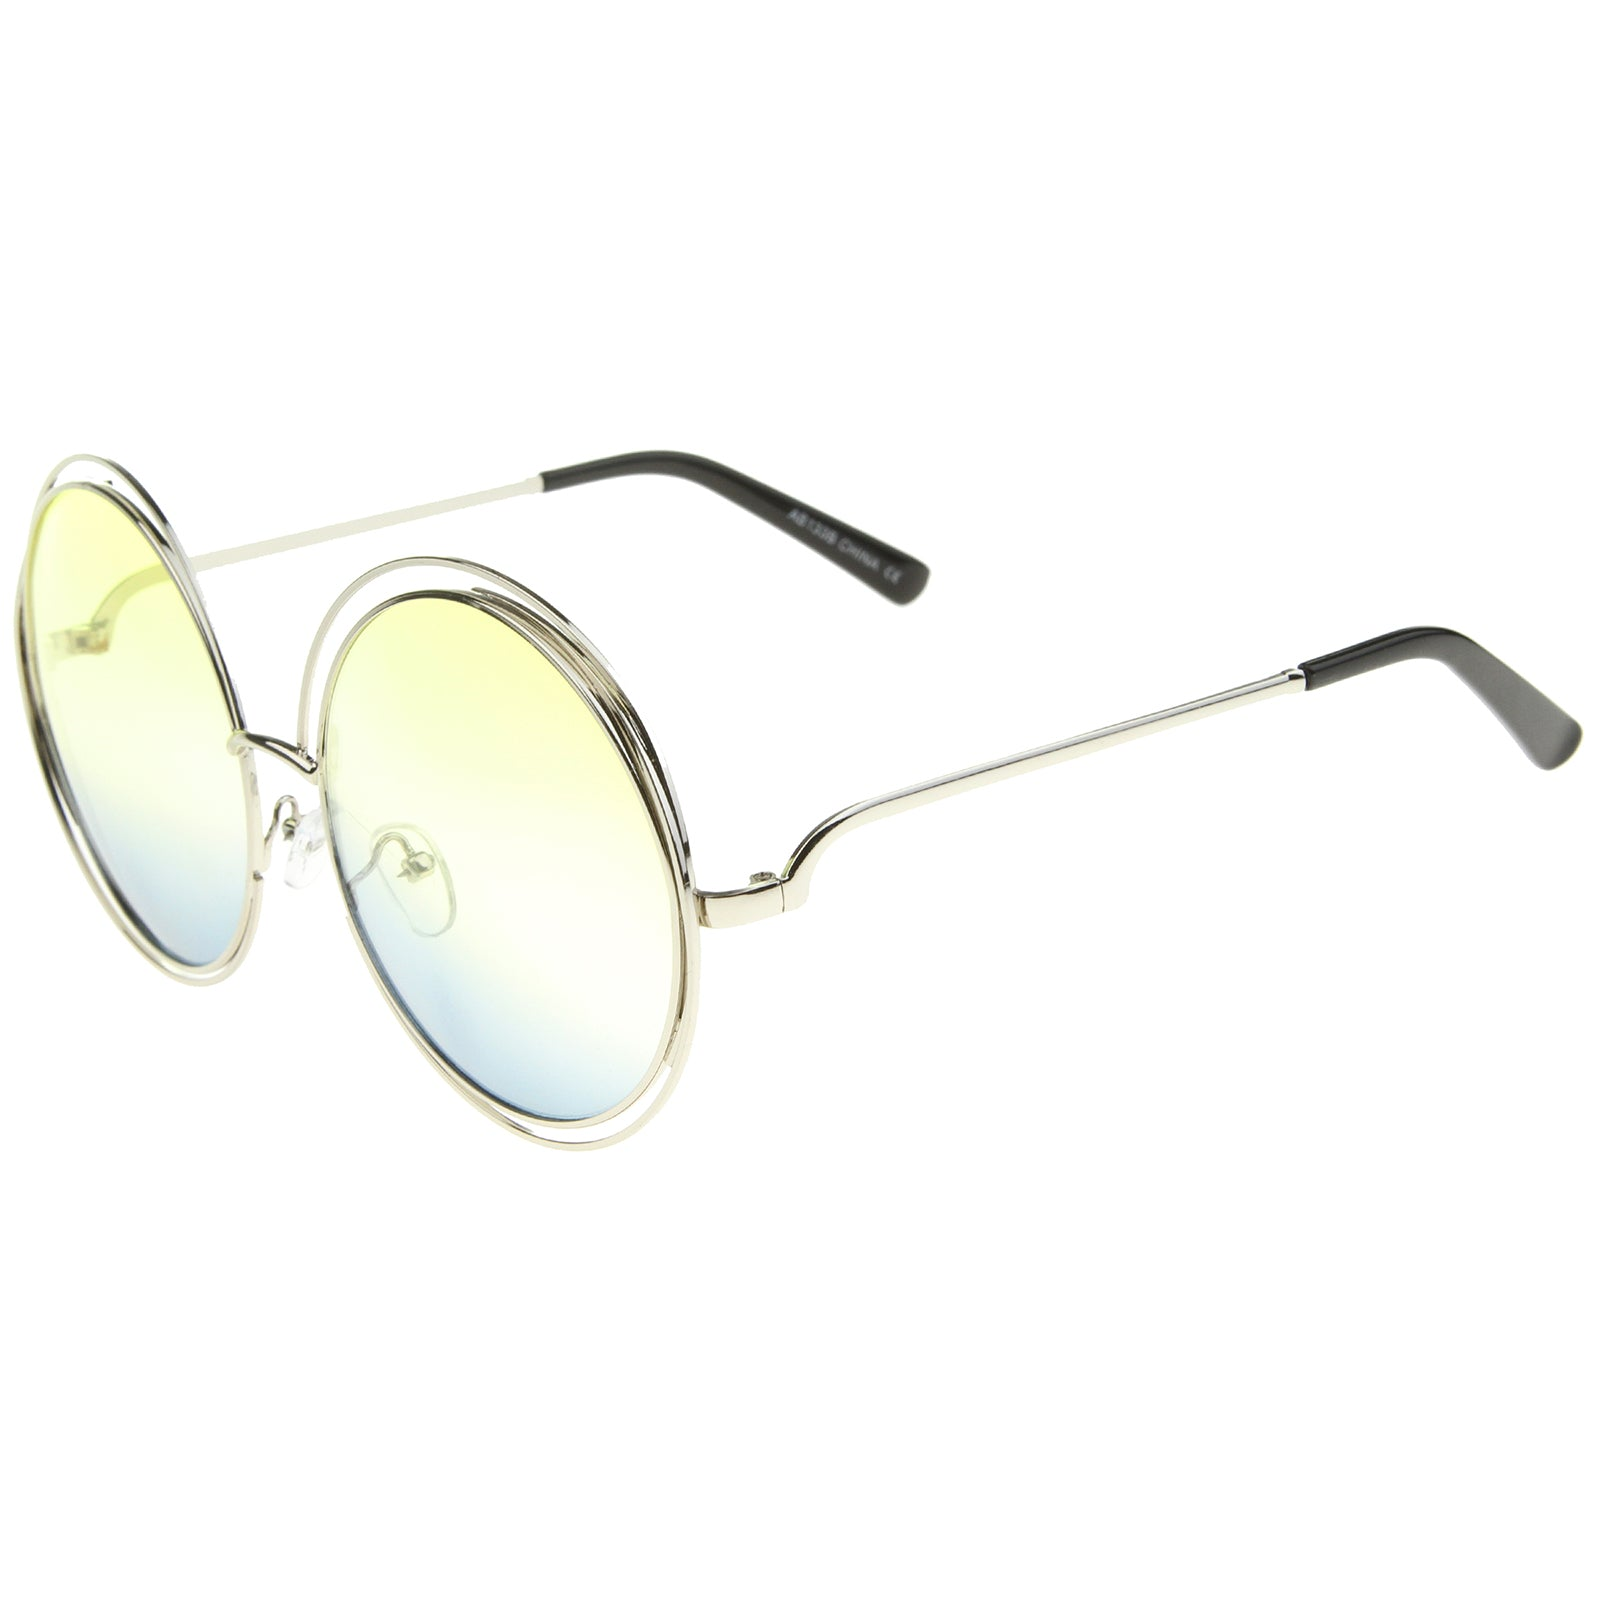 Oversize Wire Frame Gradient Two-Tone Color Lens Round Sunglasses 61mm - sunglass.la - 15